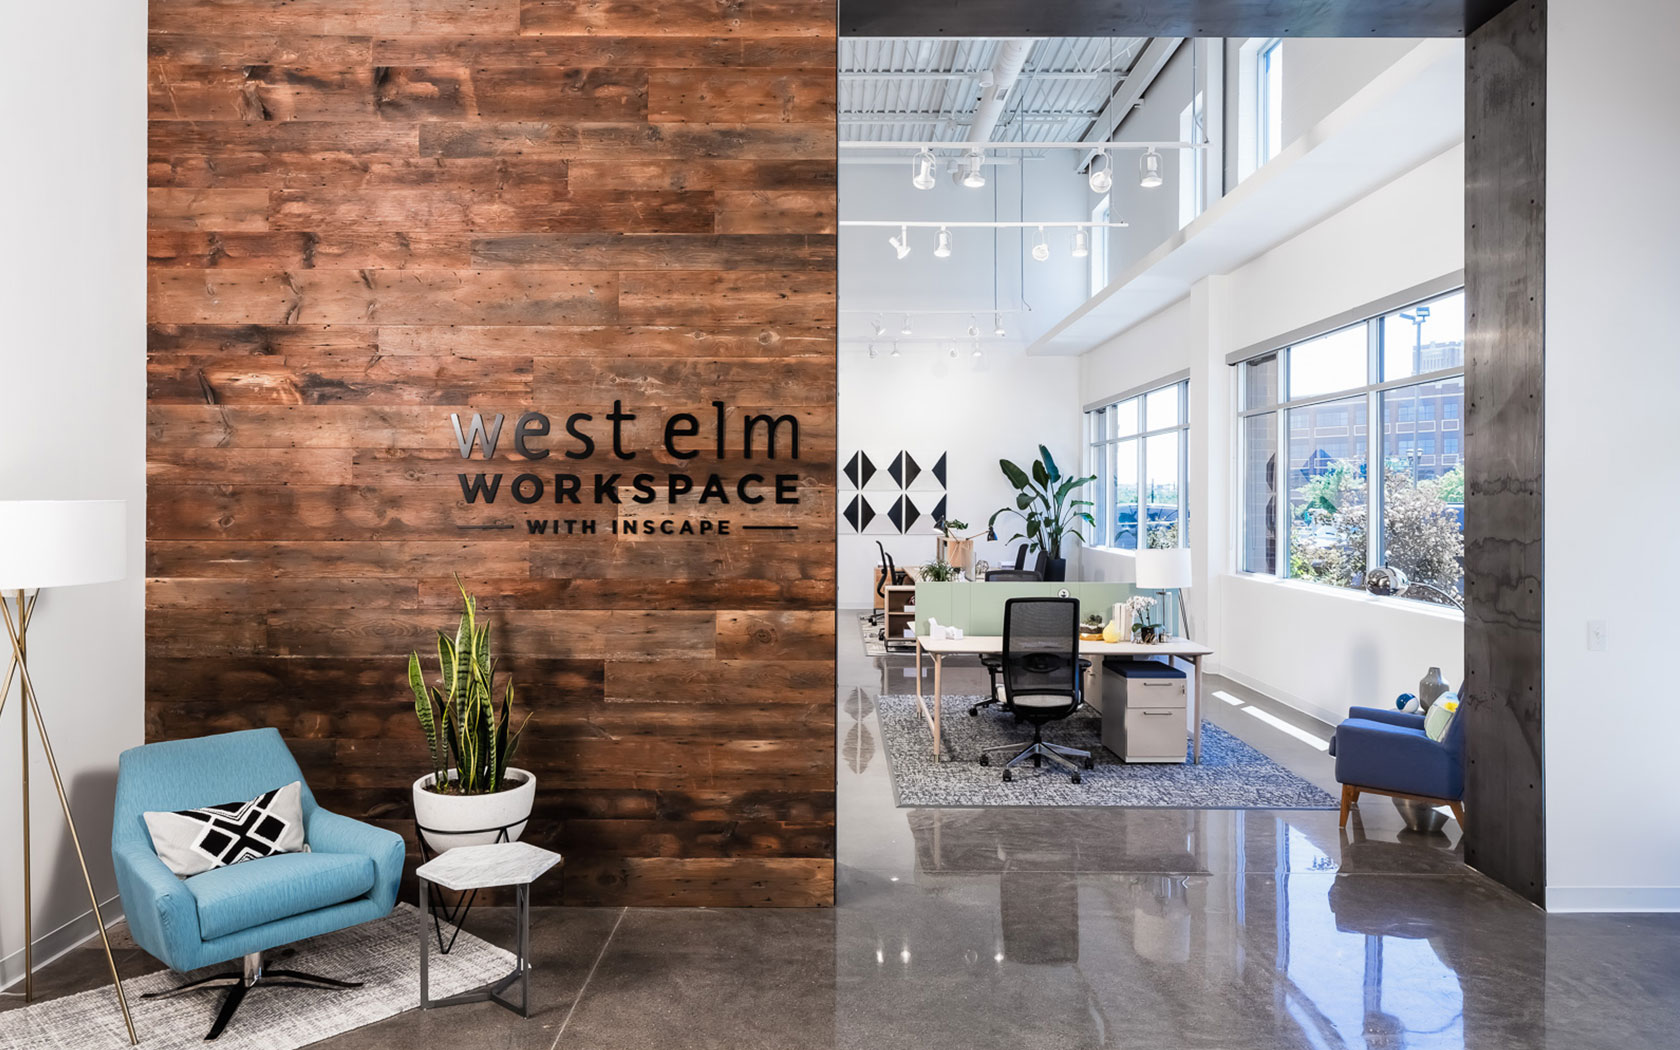 Polished stone floors, a wood-paneled wall, and white accents create the entry to the West Elm Workspace store.